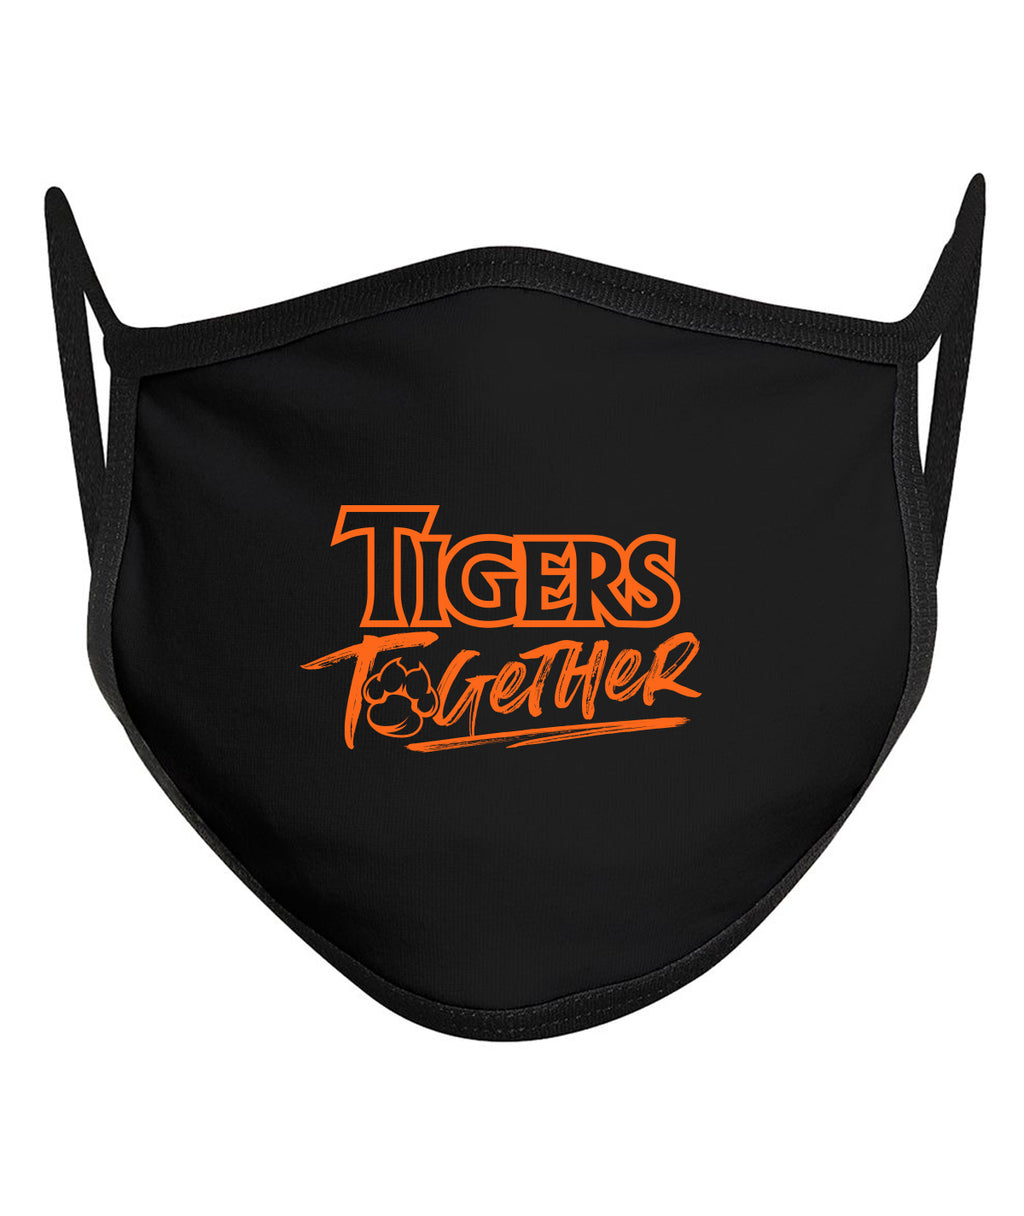 Tigers Together Customizable 3-Ply Face Mask